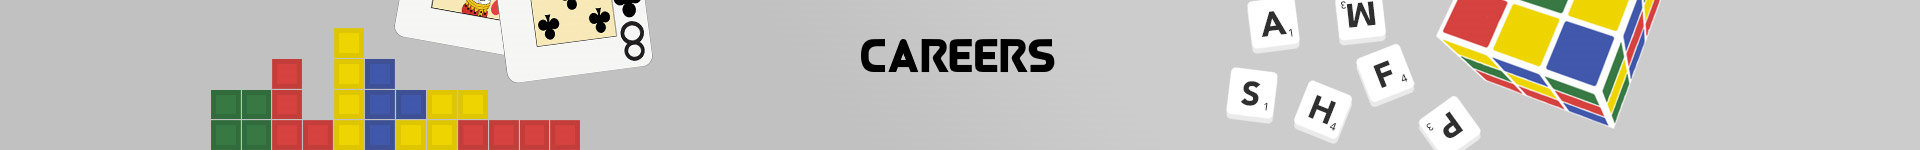 banner-careers.png